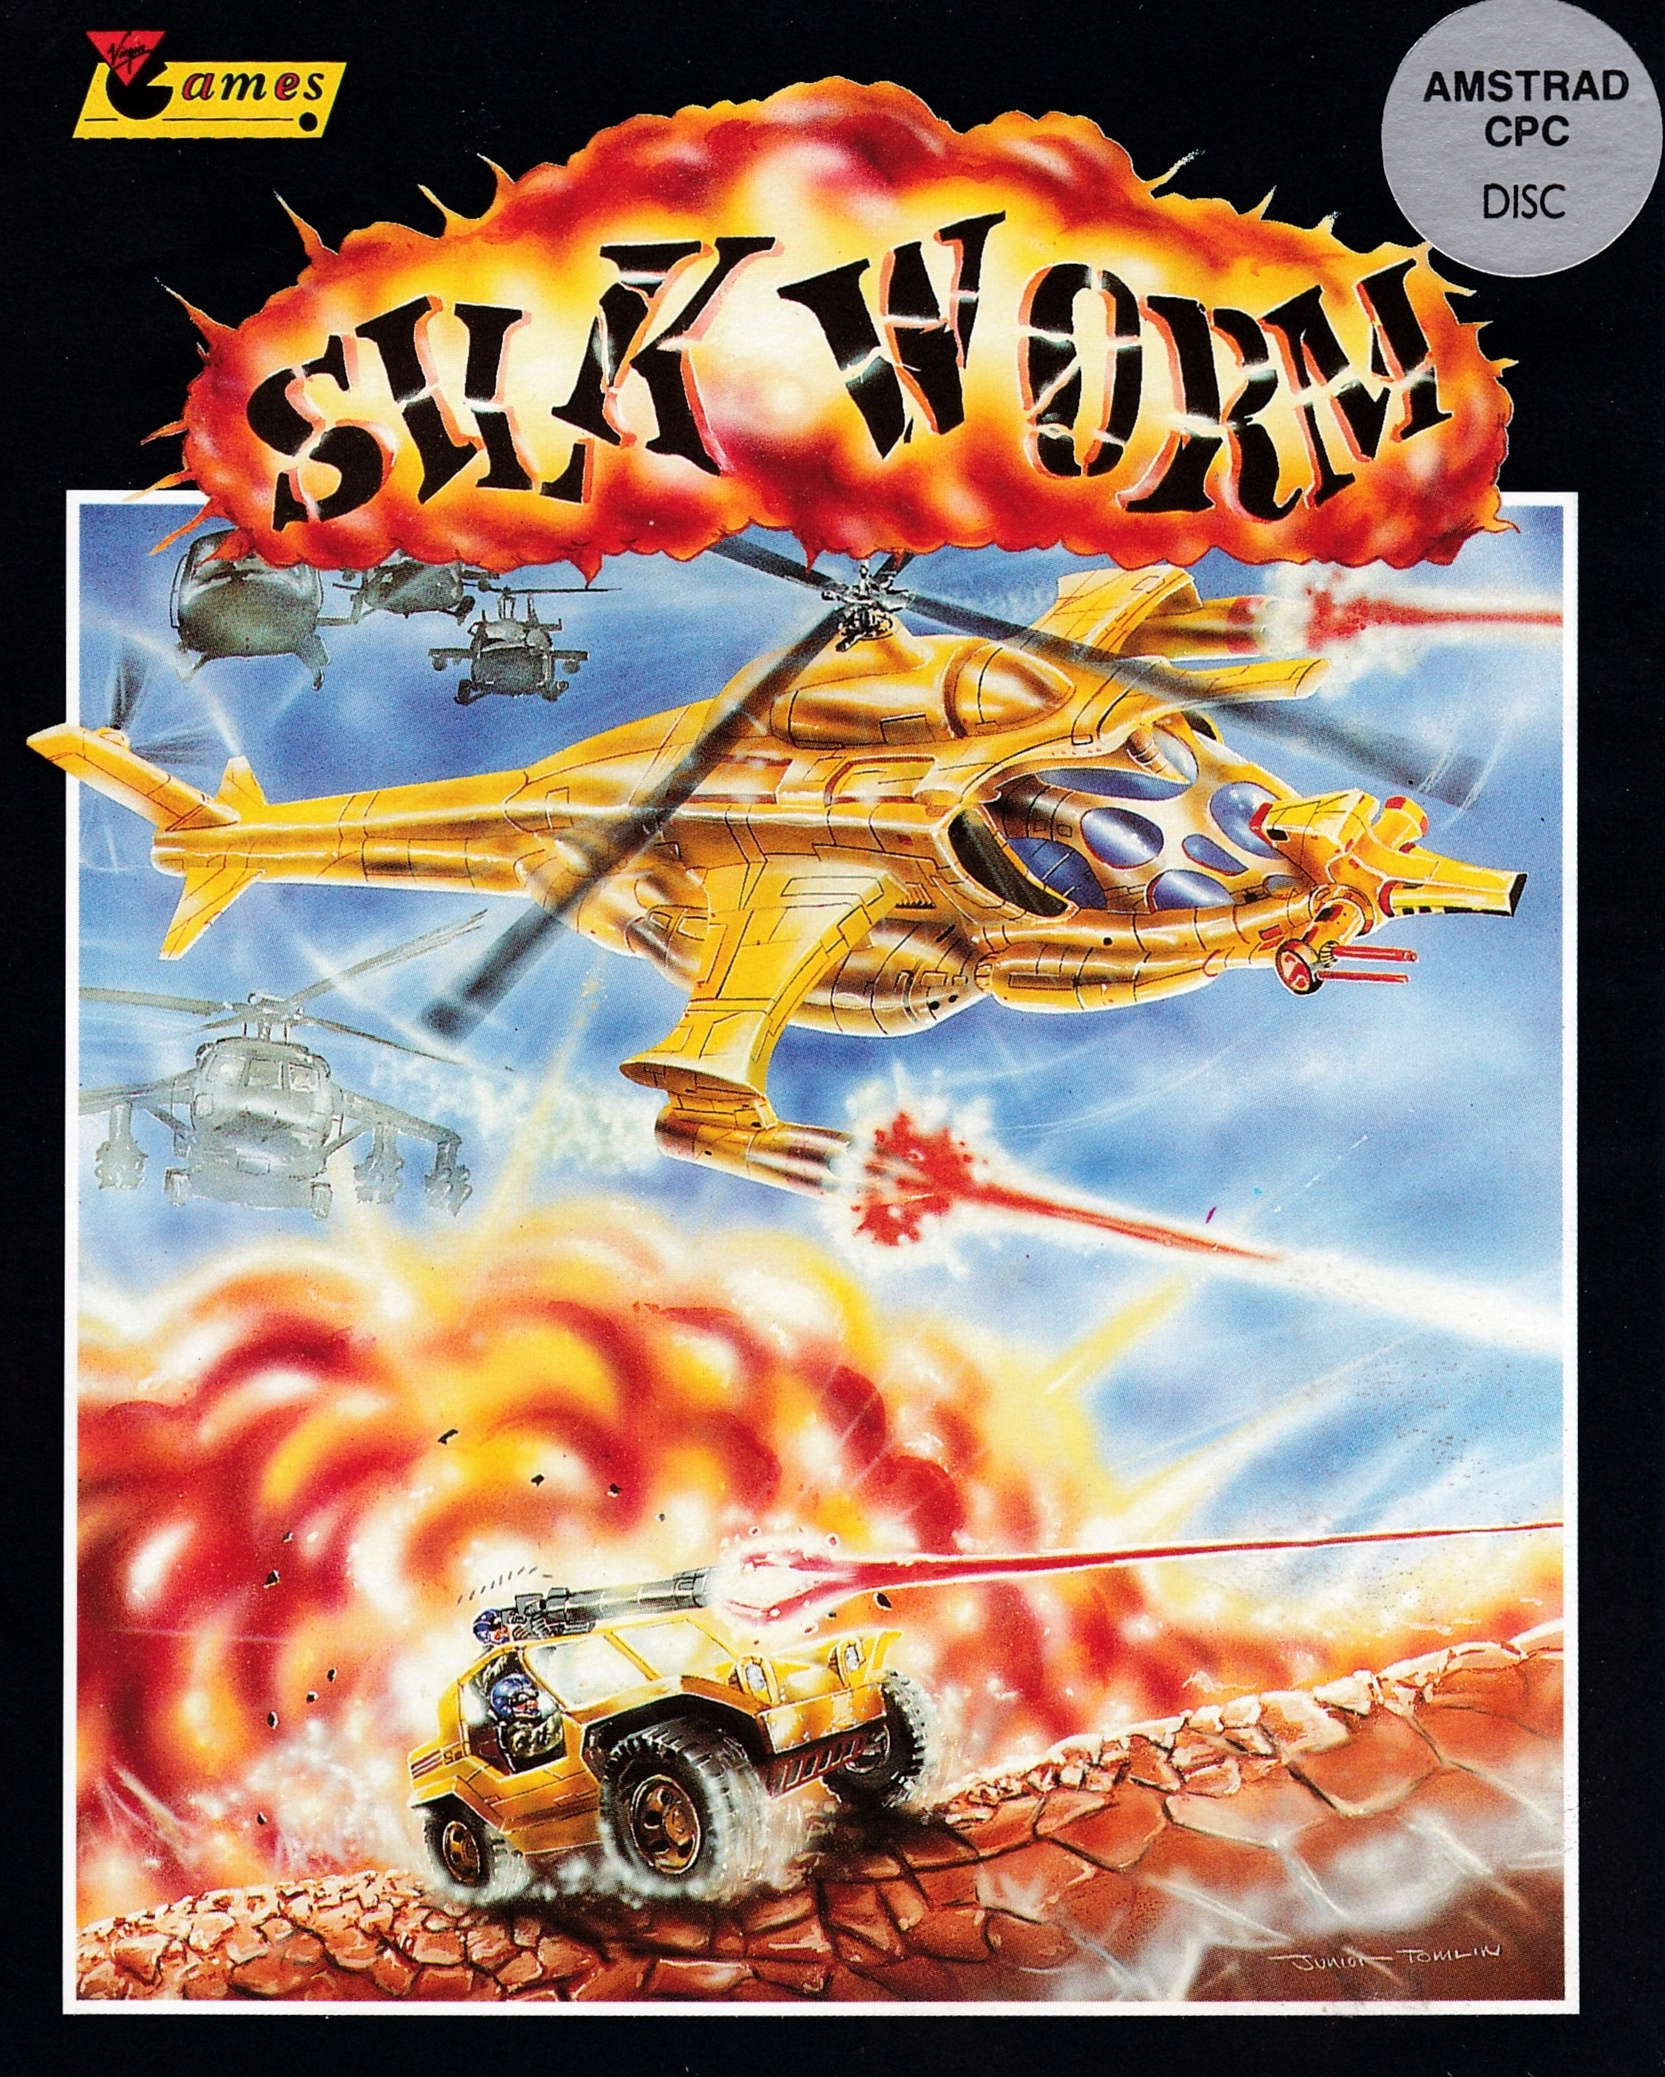 cover of the Amstrad CPC game Silkworm  by GameBase CPC